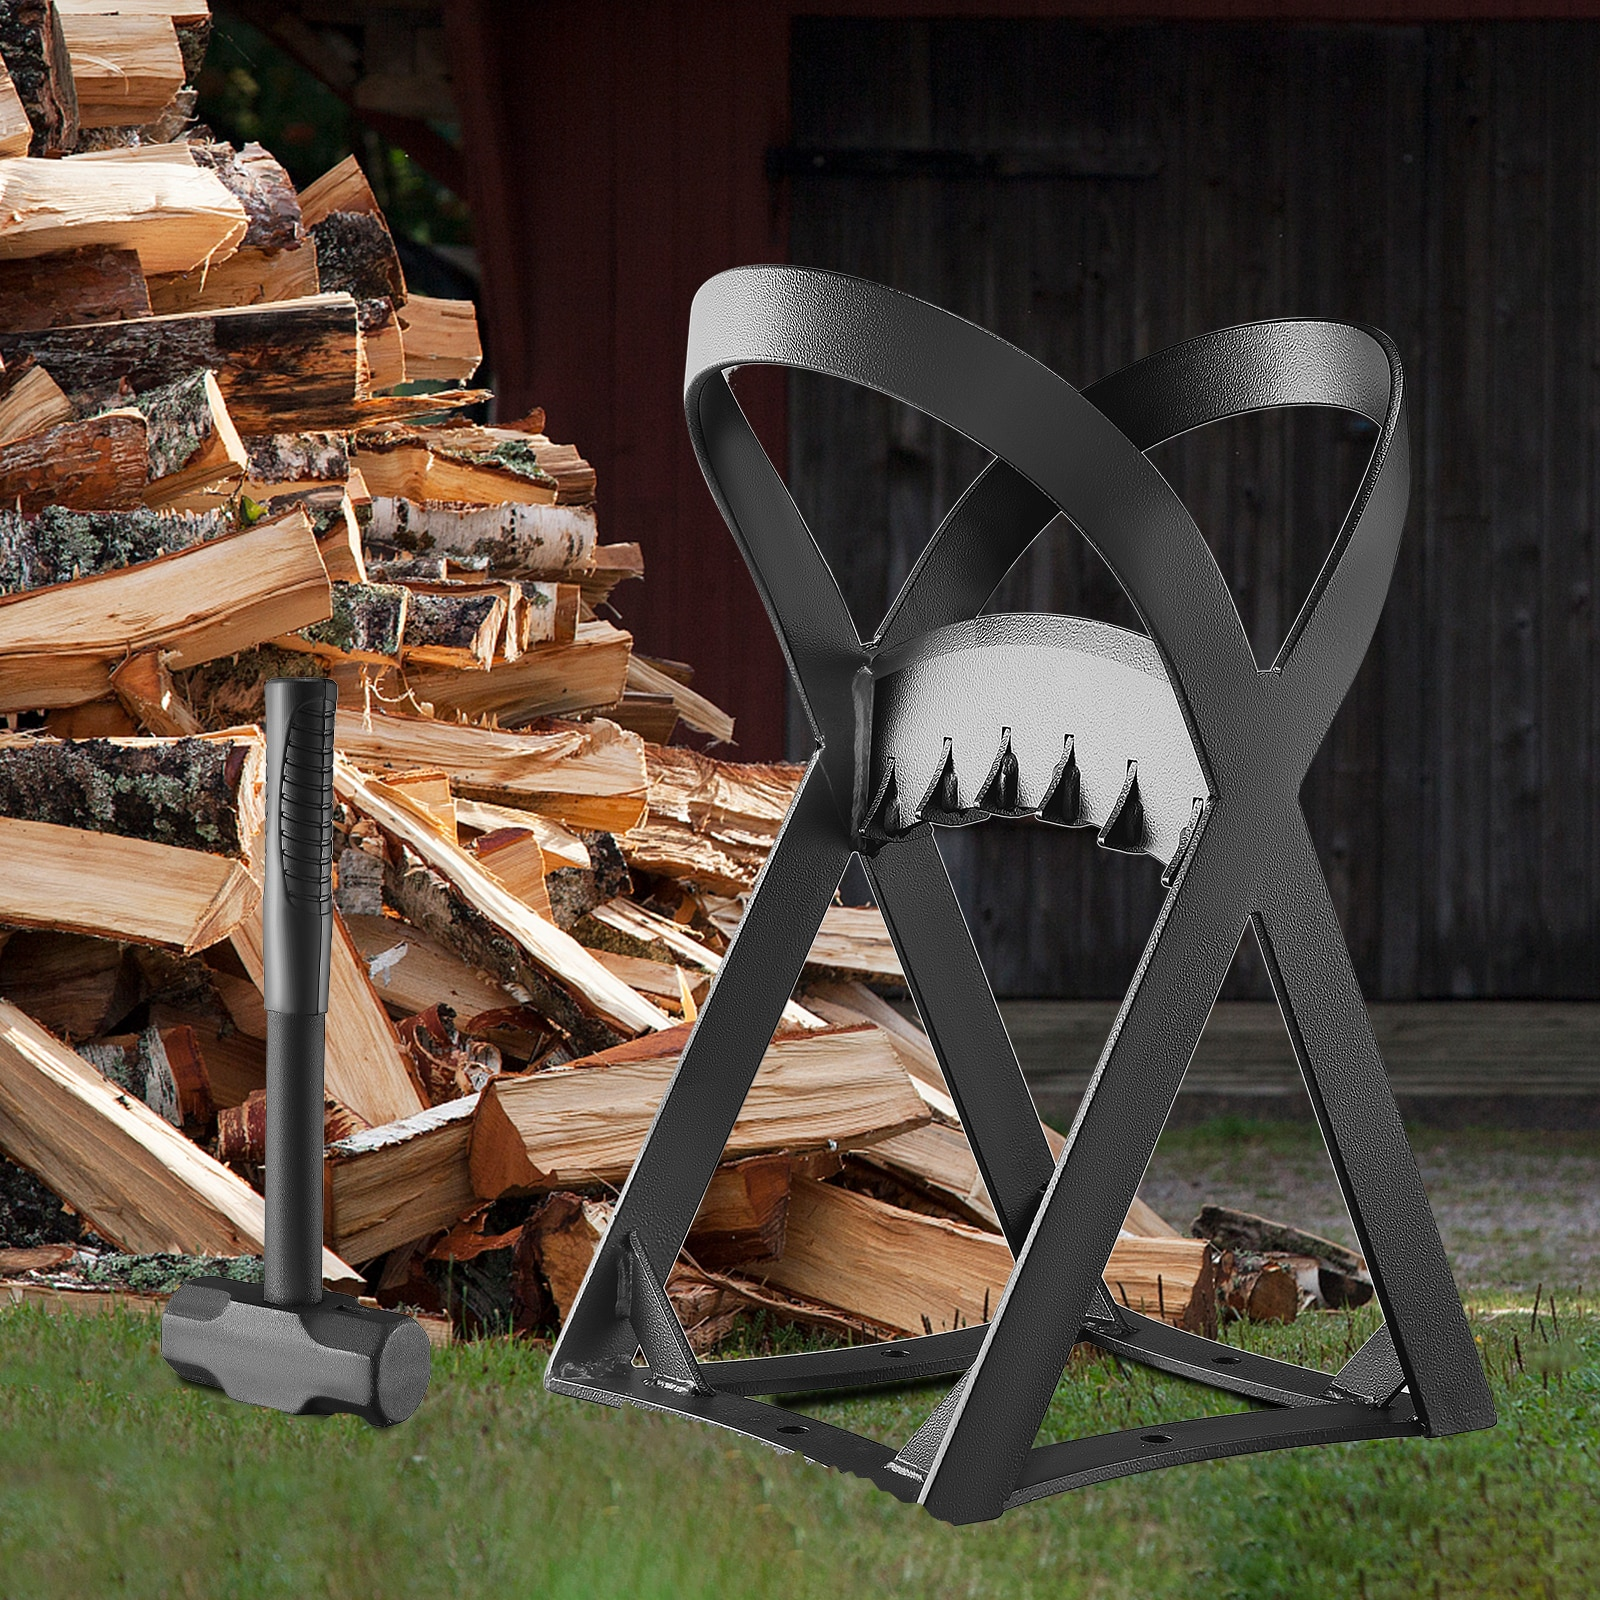 Kindle Quick Wood Log Splitter With a Hammer - Manual Splitting Tool - Steel Wedge Point Splits Firewood Woodworking Cutter enlarge